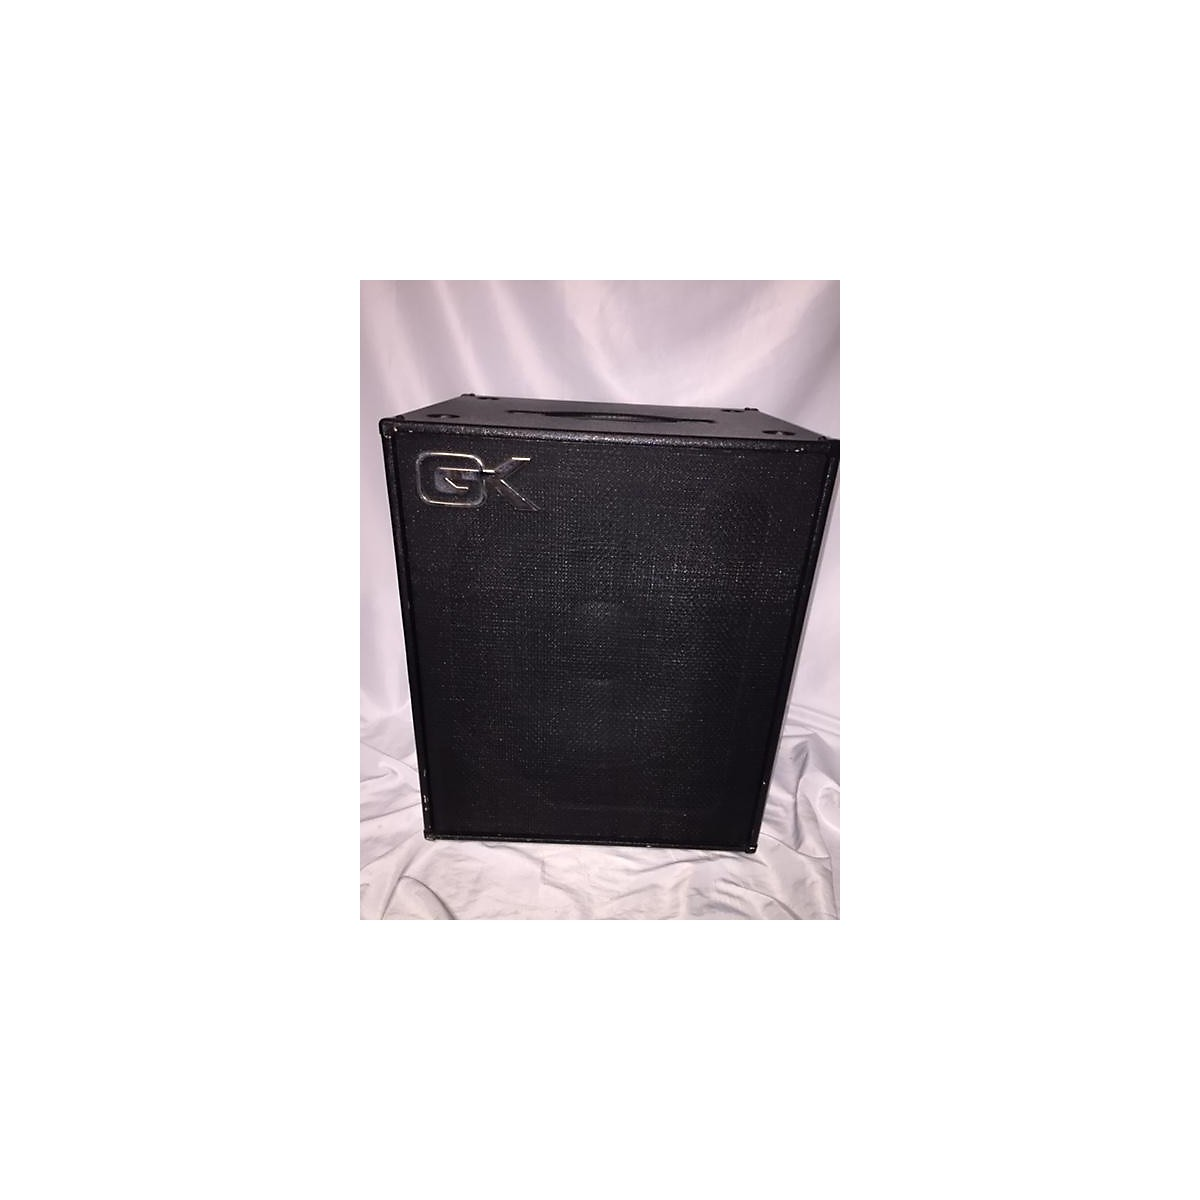 Gallien-Krueger 115MBP 1x15 Powered Bass Cabinet